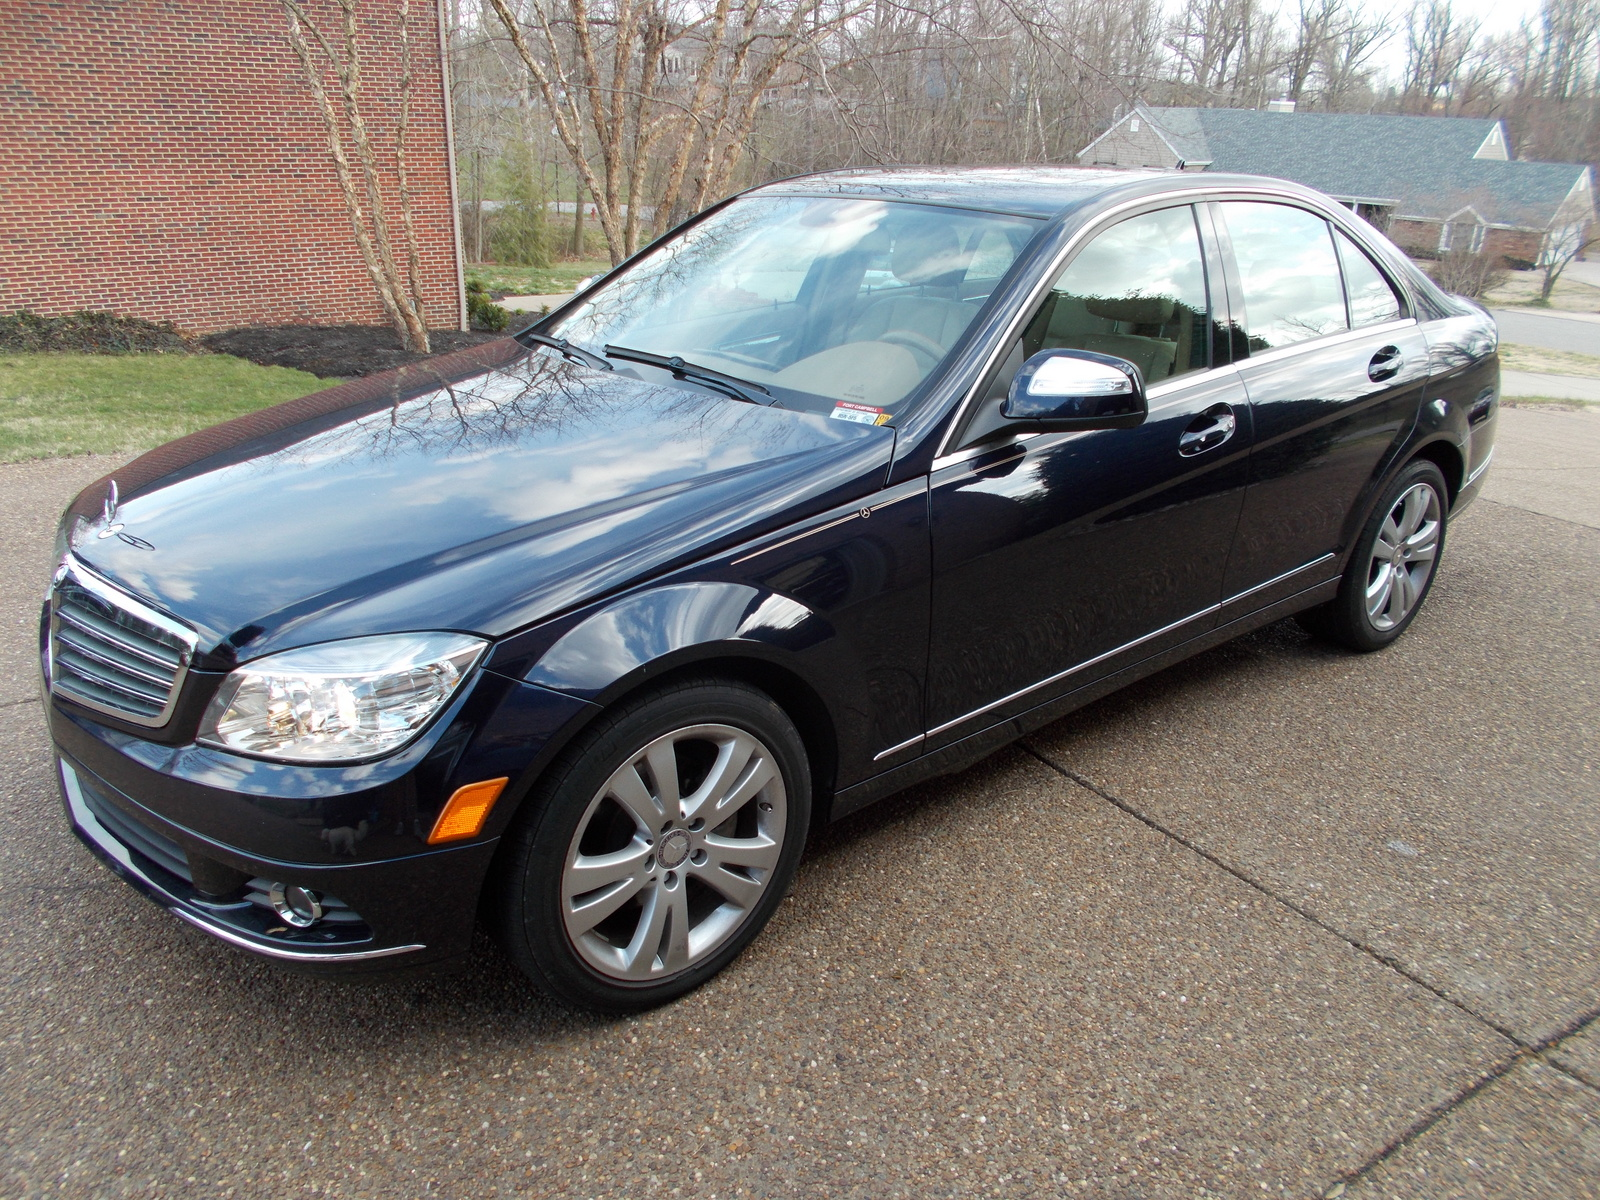 2008 mercedes benz c class c300 luxury for sale cargurus for Mercedes benz for sale cargurus